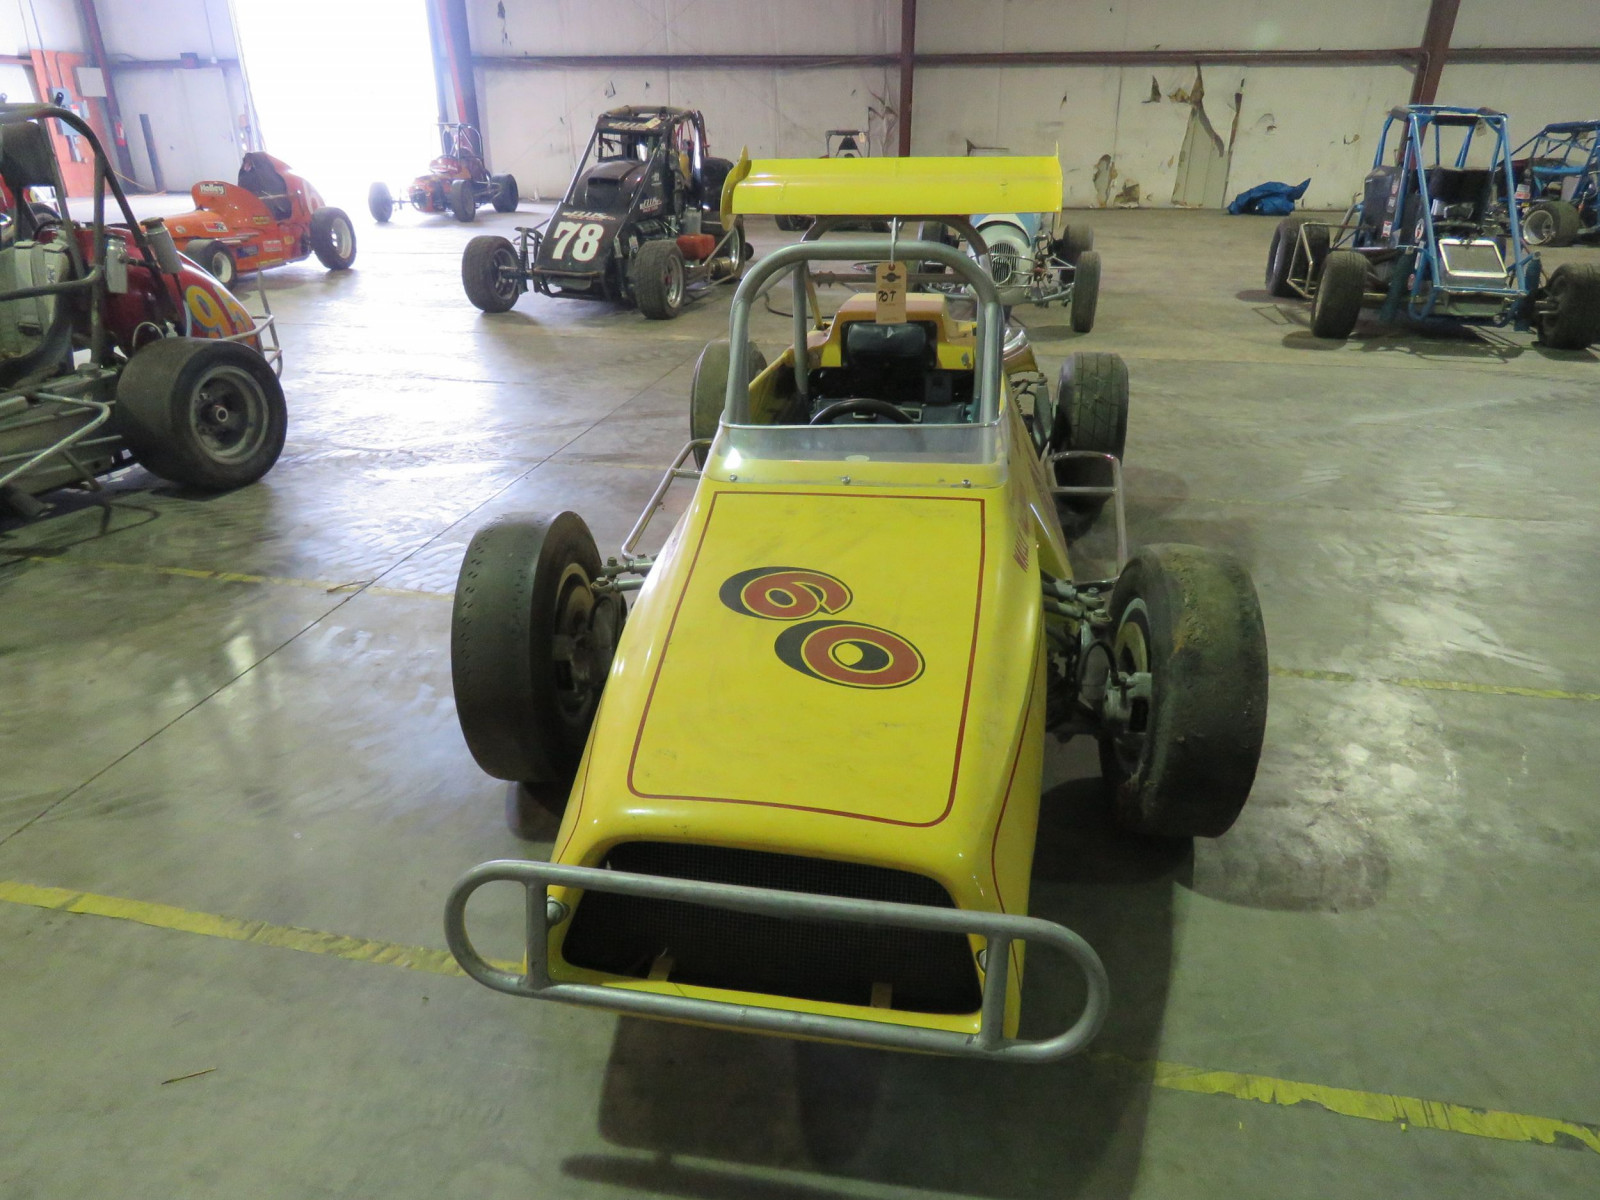 RARE Ken Brenn rear Engine 110 Beattie Midget Race Car - Image 2